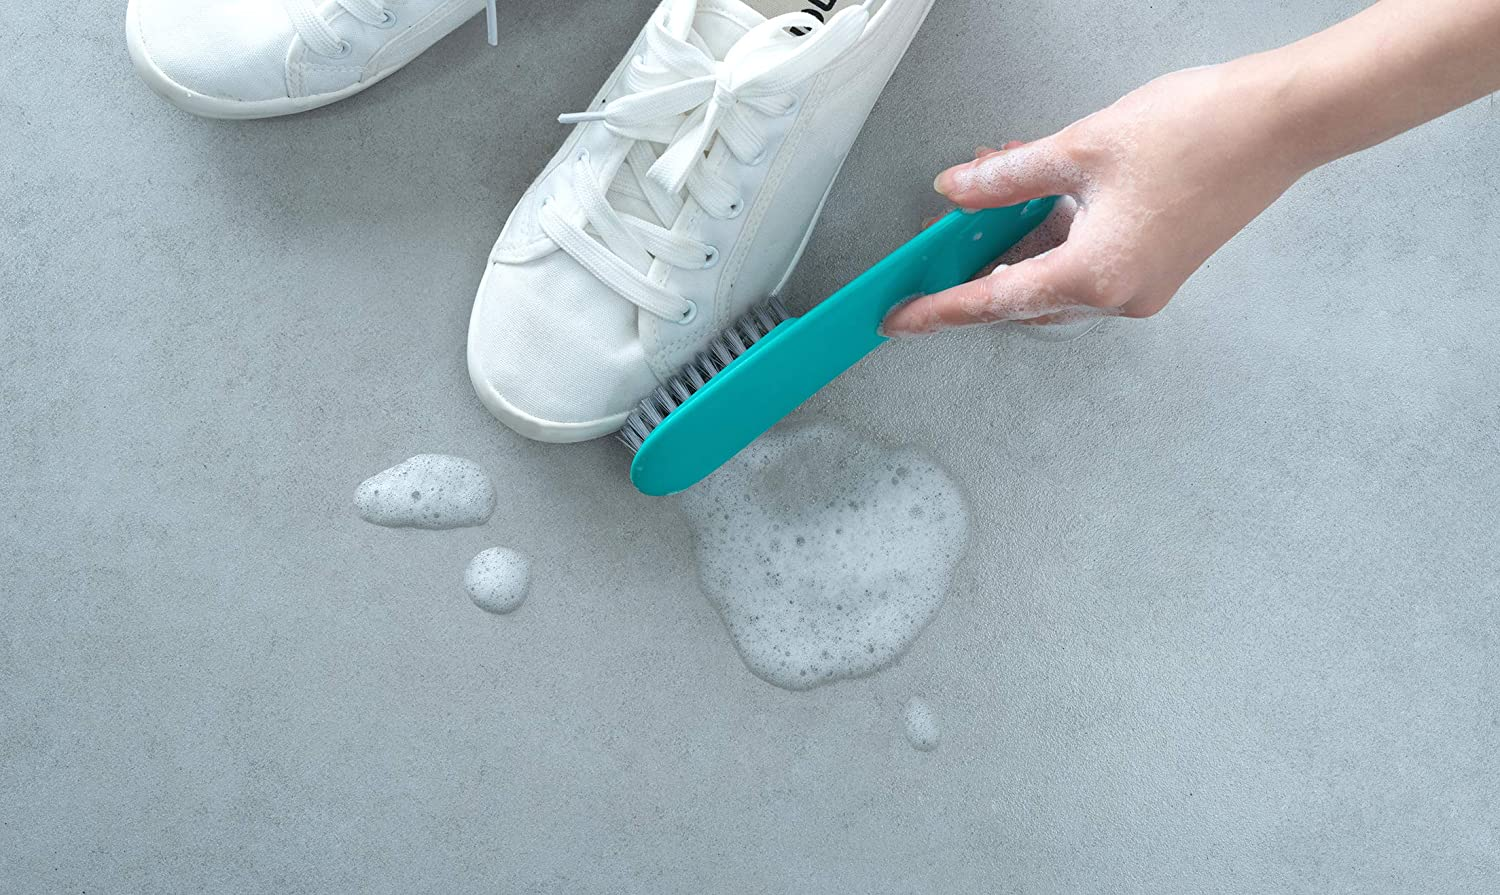 Pioneer Clan 2 Pcs Green /&White Plastic Handle Clothes Cleaner Shoes Scrubbing Cleaning Brush